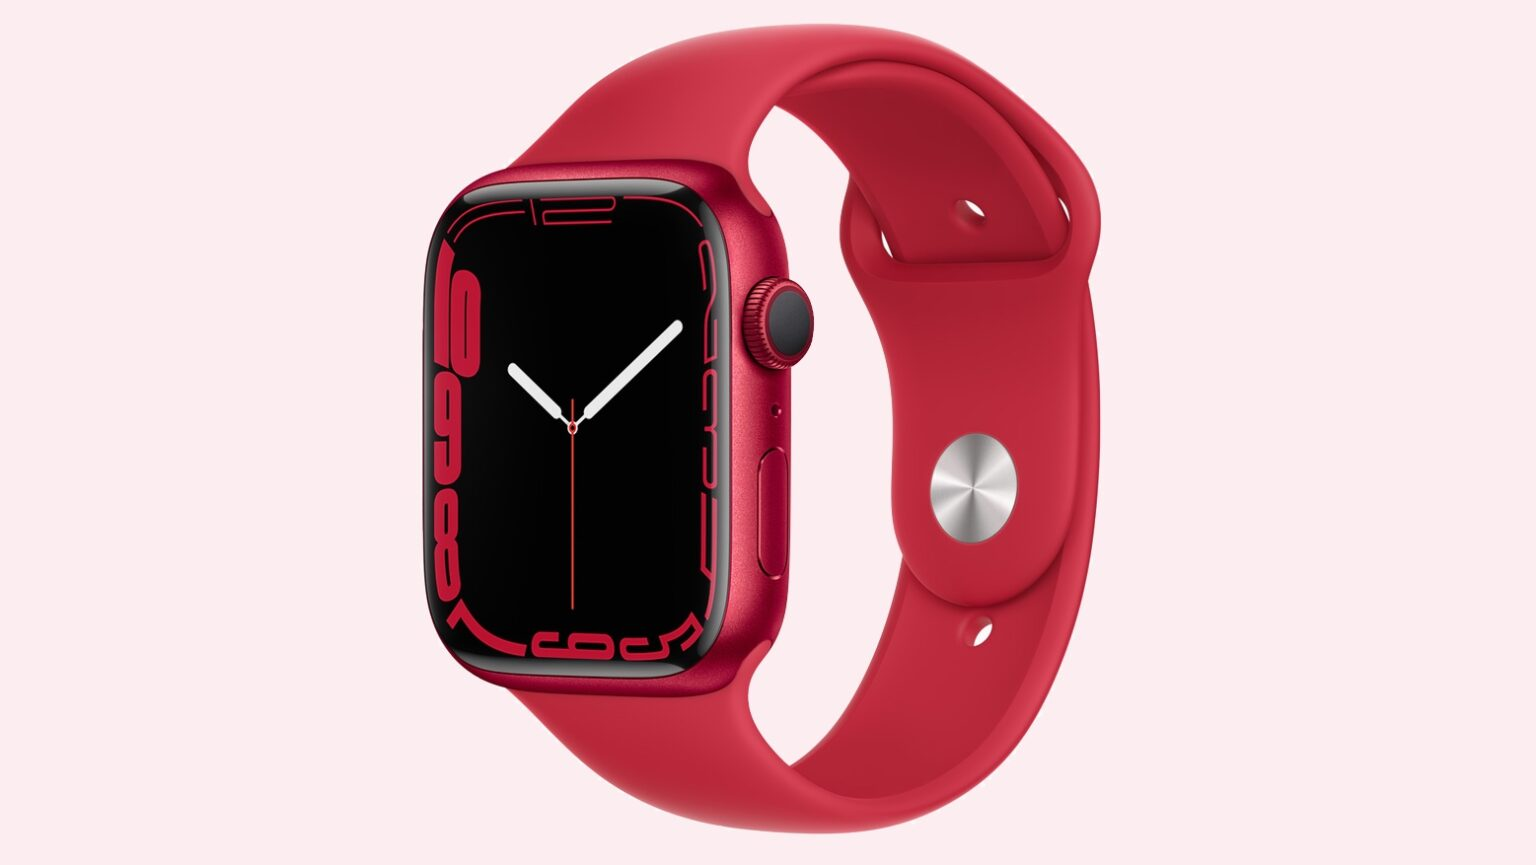 Apple stays strangely silent on most Apple Watch Series 7 prices